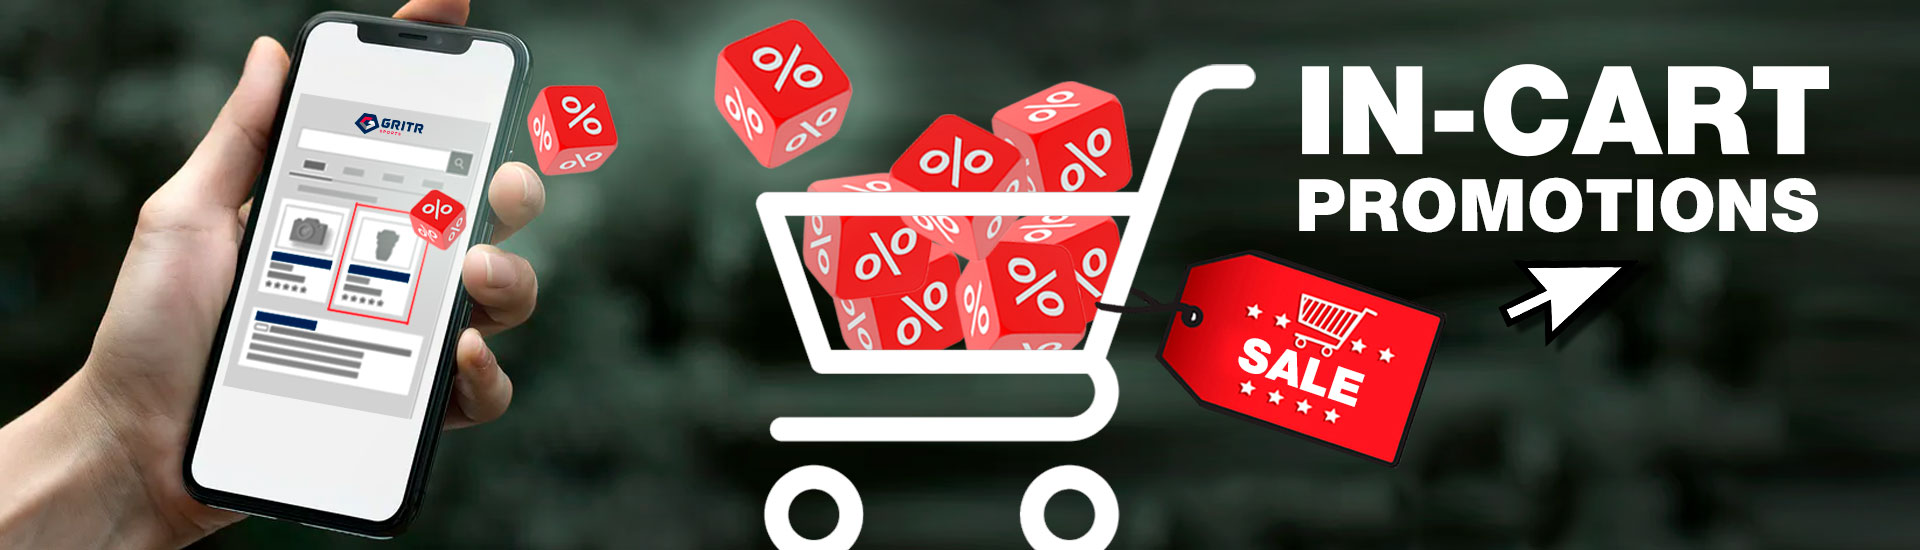 in-cart promotions